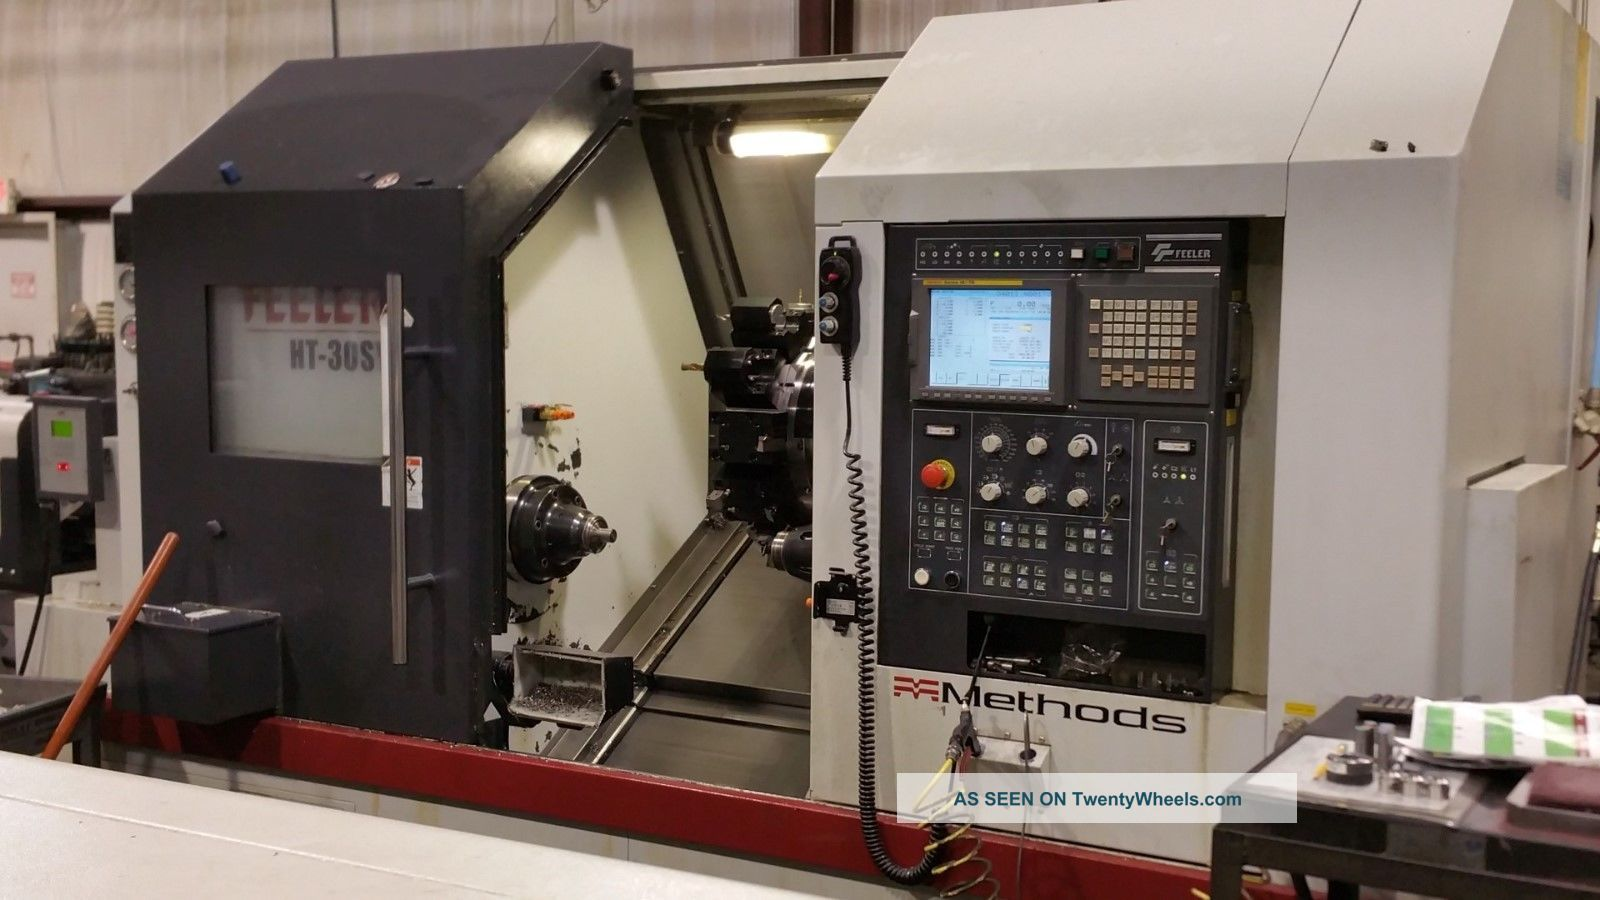 Feeler Ht - 30sy Cnc Turning Center Sub Spindle Live Tool Y Axis Fanuc Lns 11 Metalworking Lathes photo